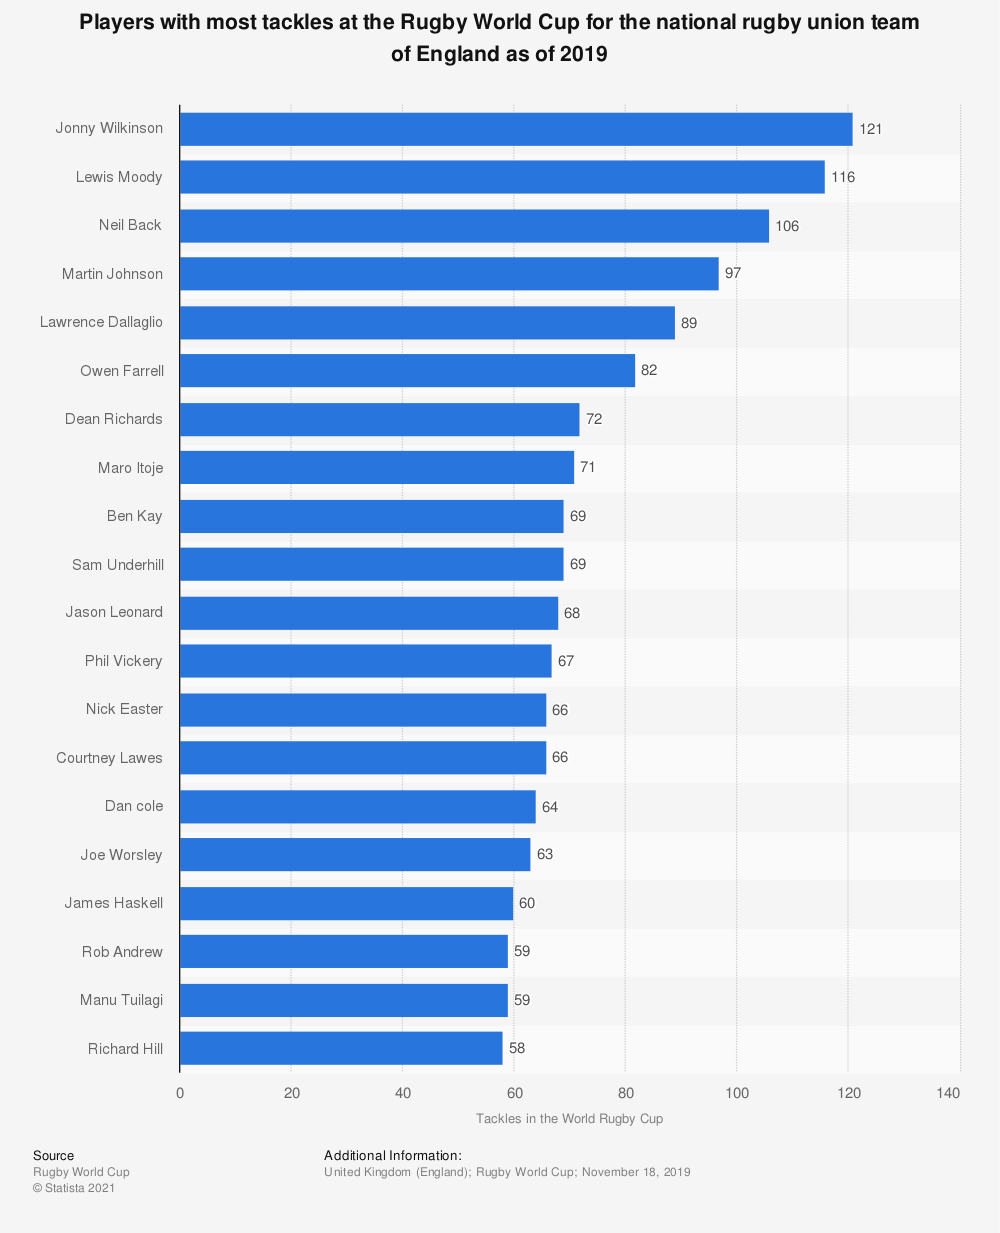 Statistic: Players with most tackles at the Rugby World Cup for the national rugby union team of England as of 2019 | Statista